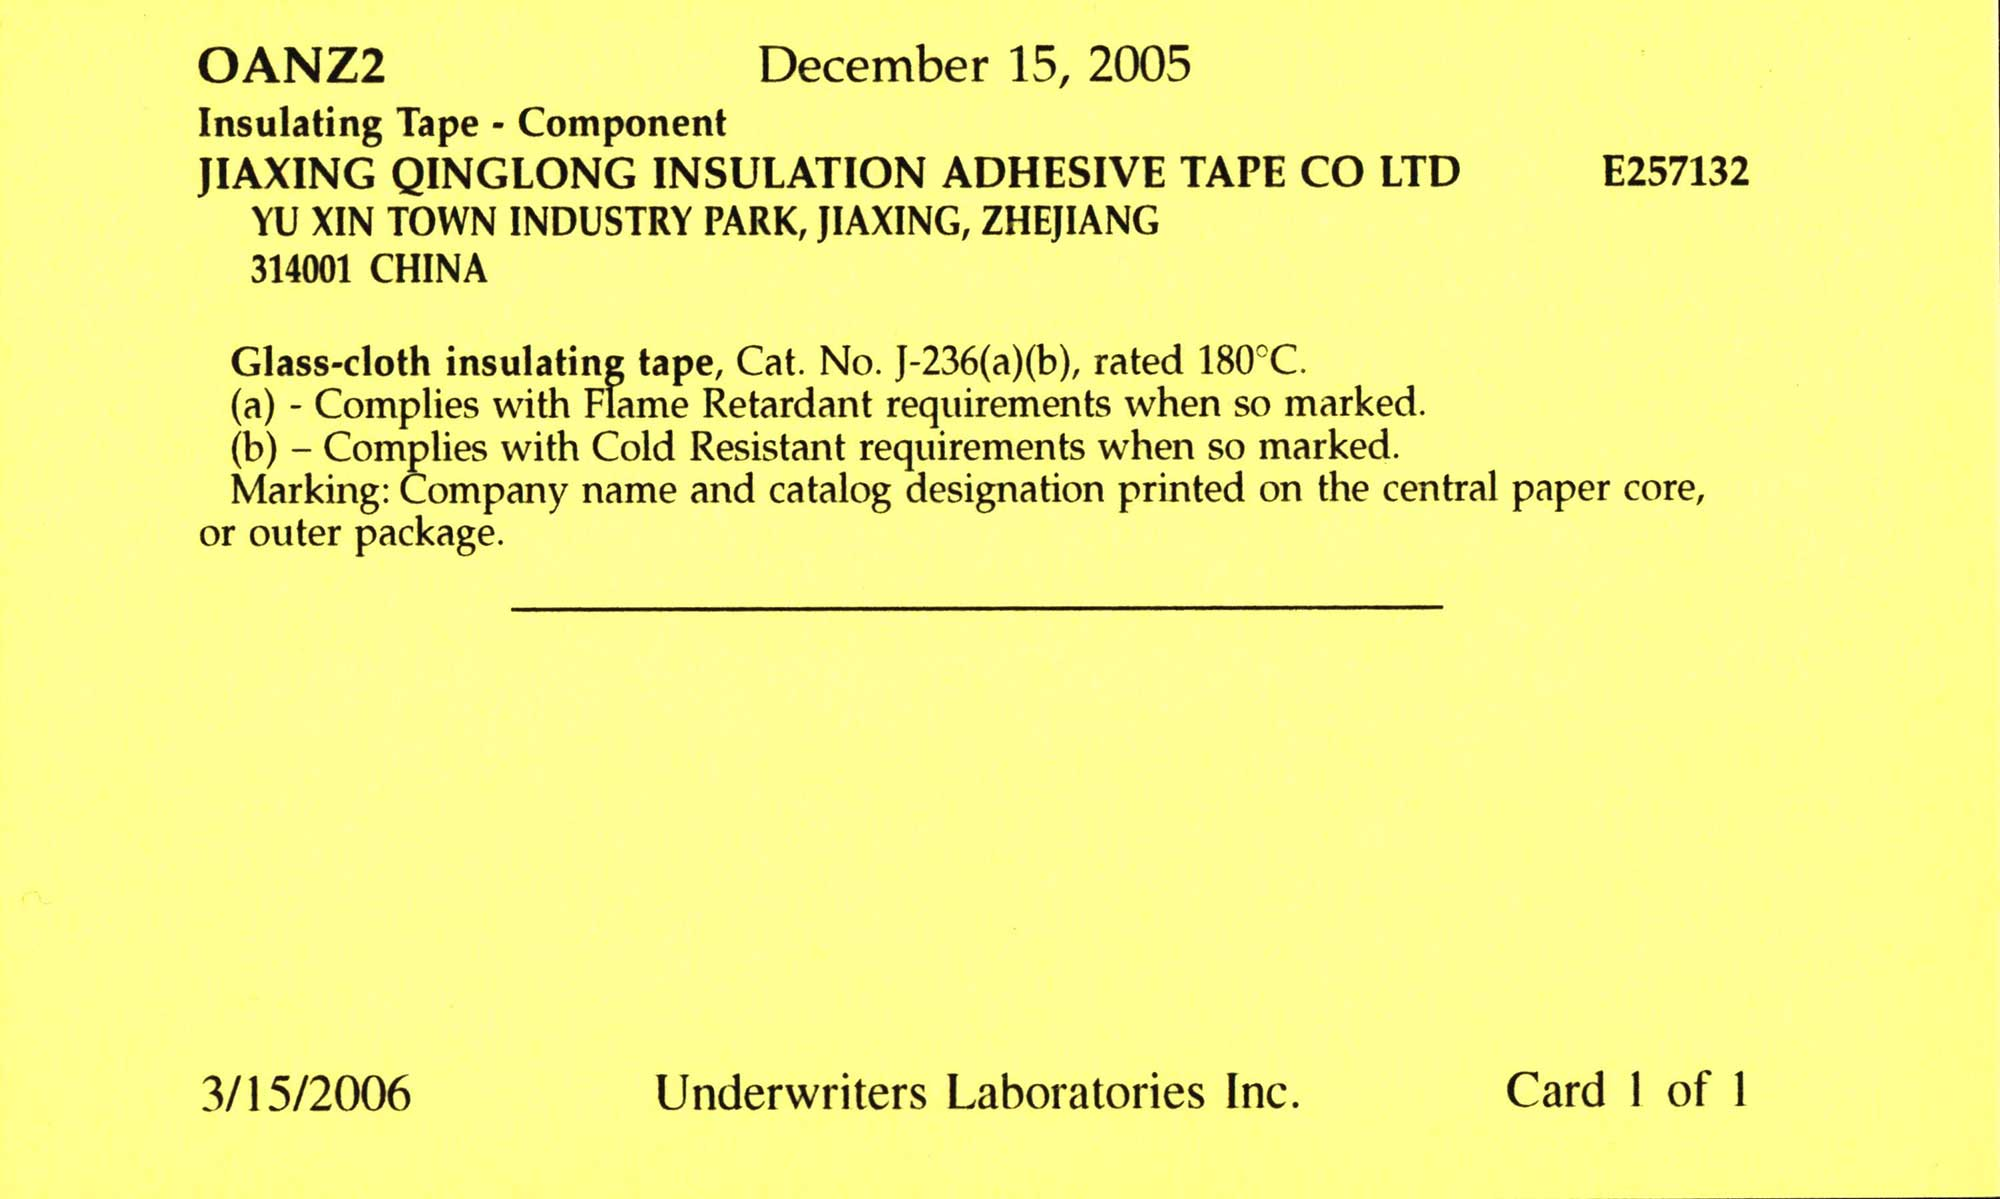 J-236 glass cloth adhesive tapes passed UL certification